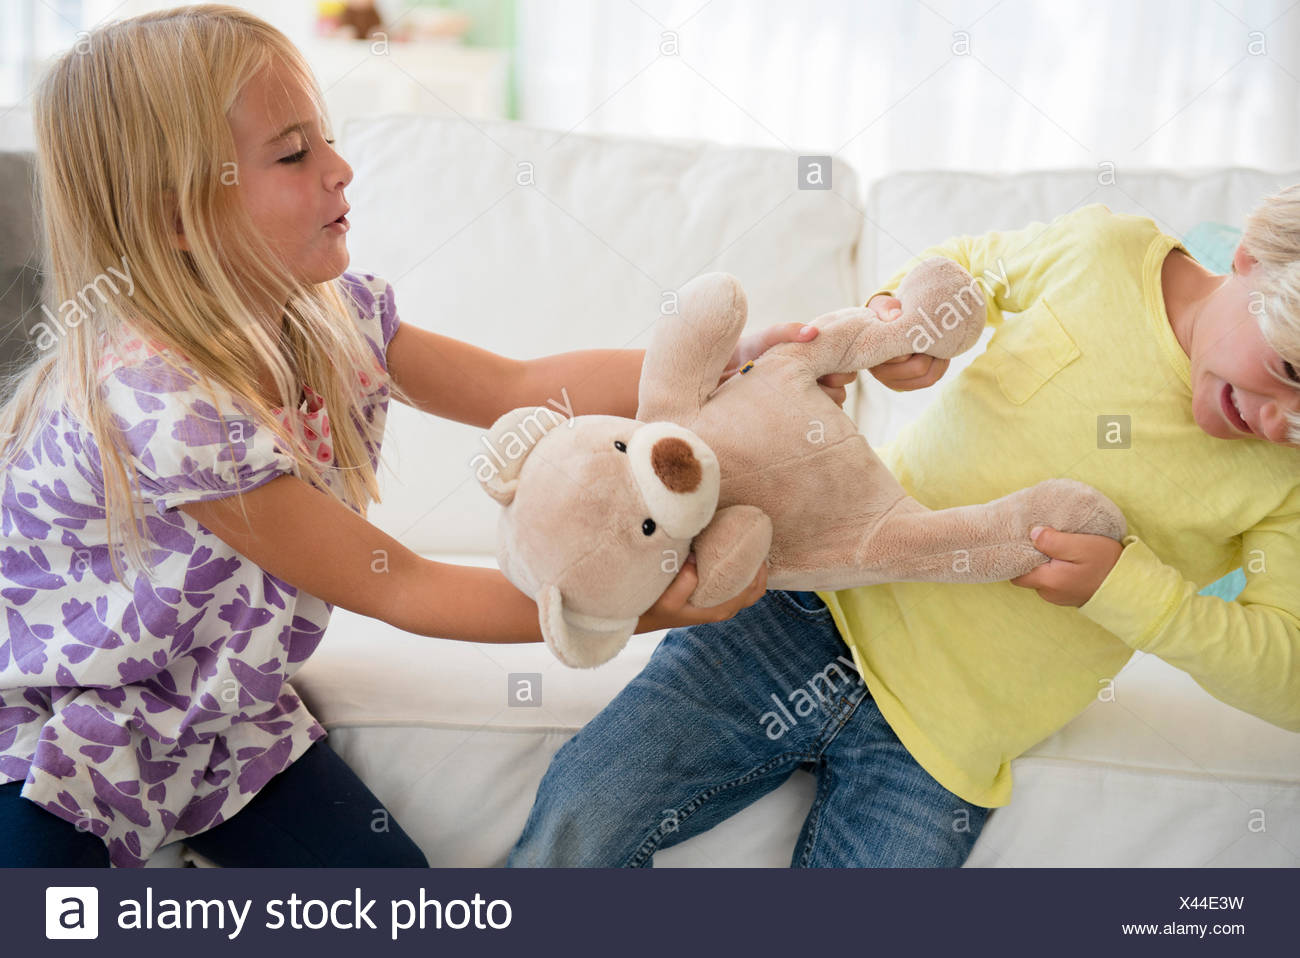 Boy (4-5) and girl (6-7) arguing - Stock Image